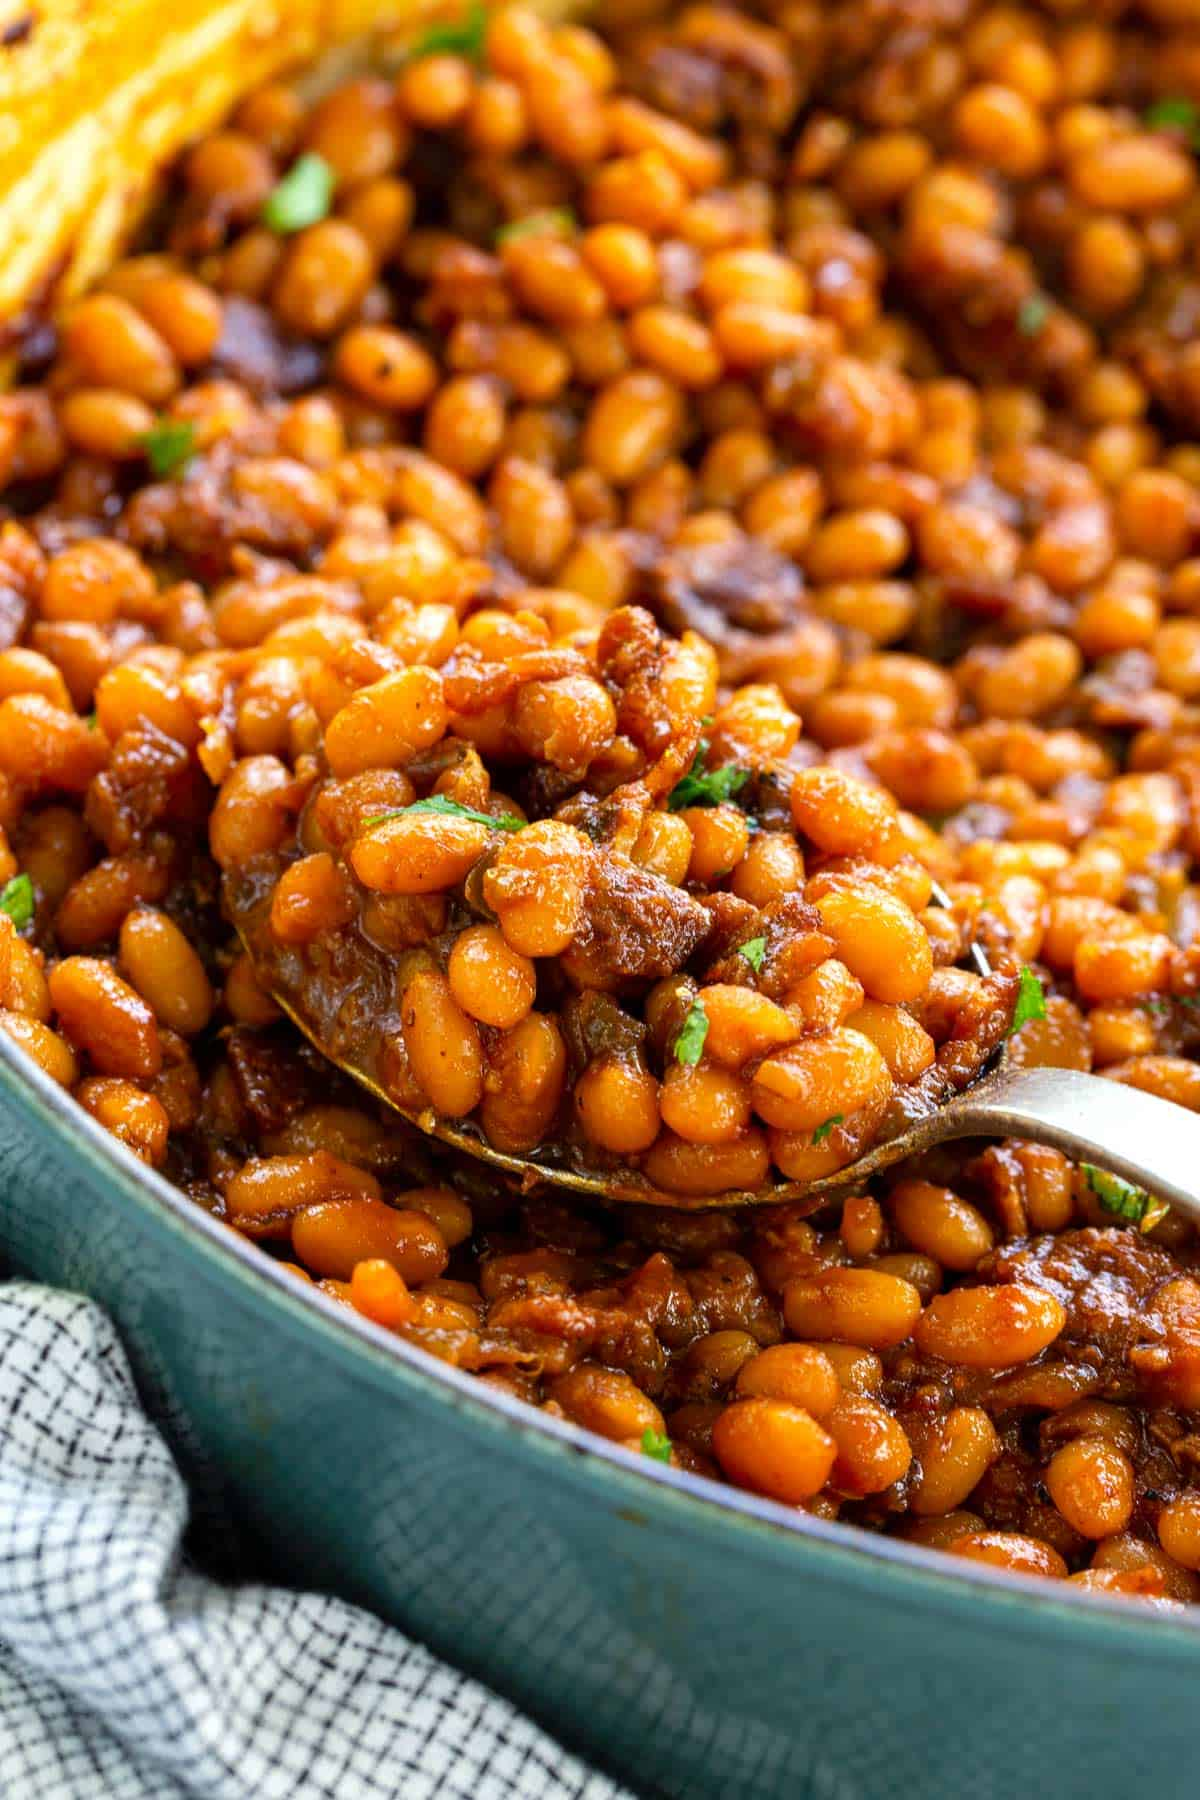 Easy homemade baked beans recipe that goes well with your favorite barbecued foods or as an everyday side dish. #bakedbeans #beans #barbecue